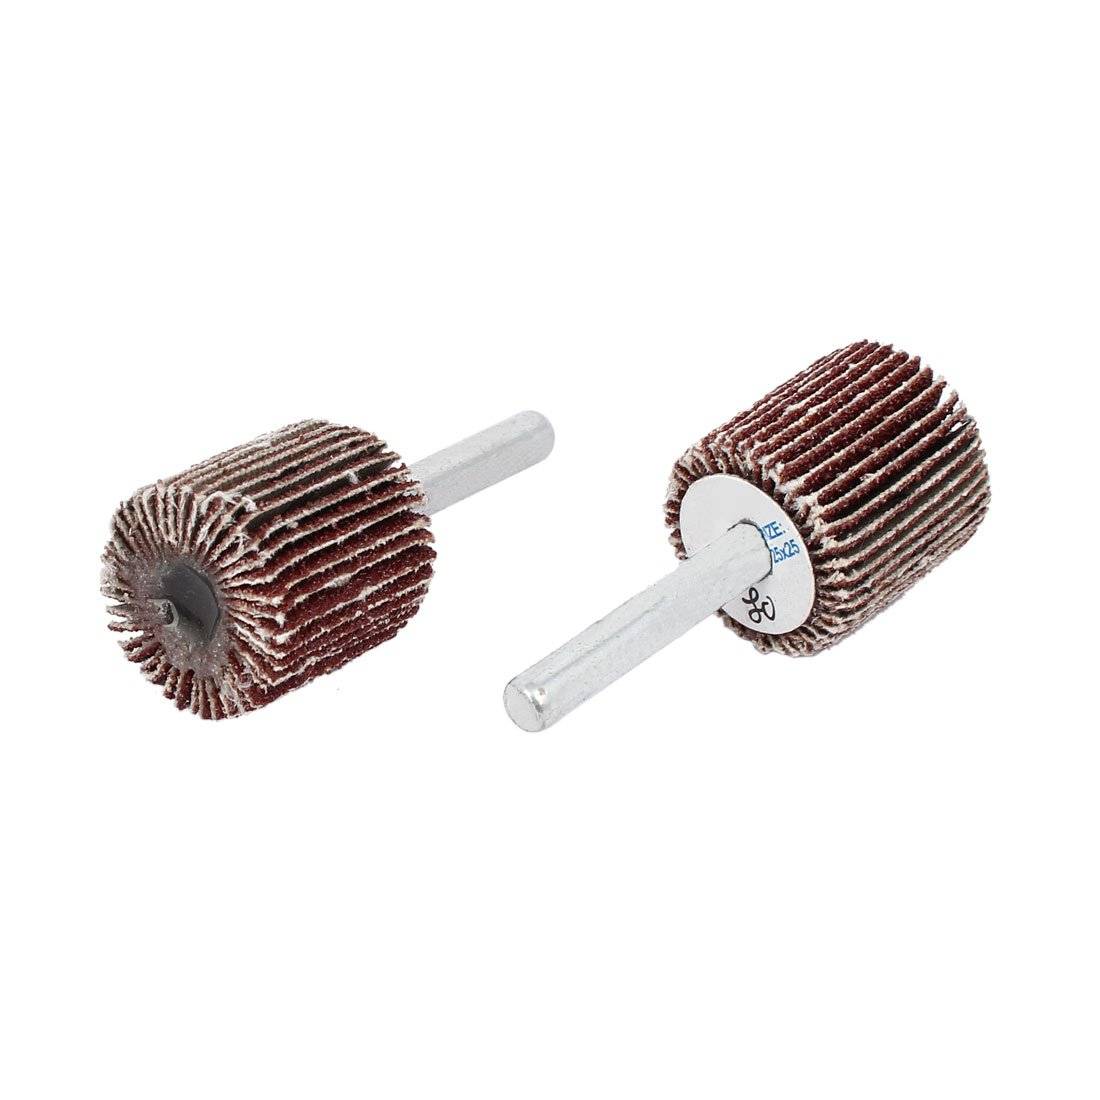 uxcell6mmx25mmx25mm Cylinder Head Flap Wheels Polishers Sanding Buffing Tools 2pcs